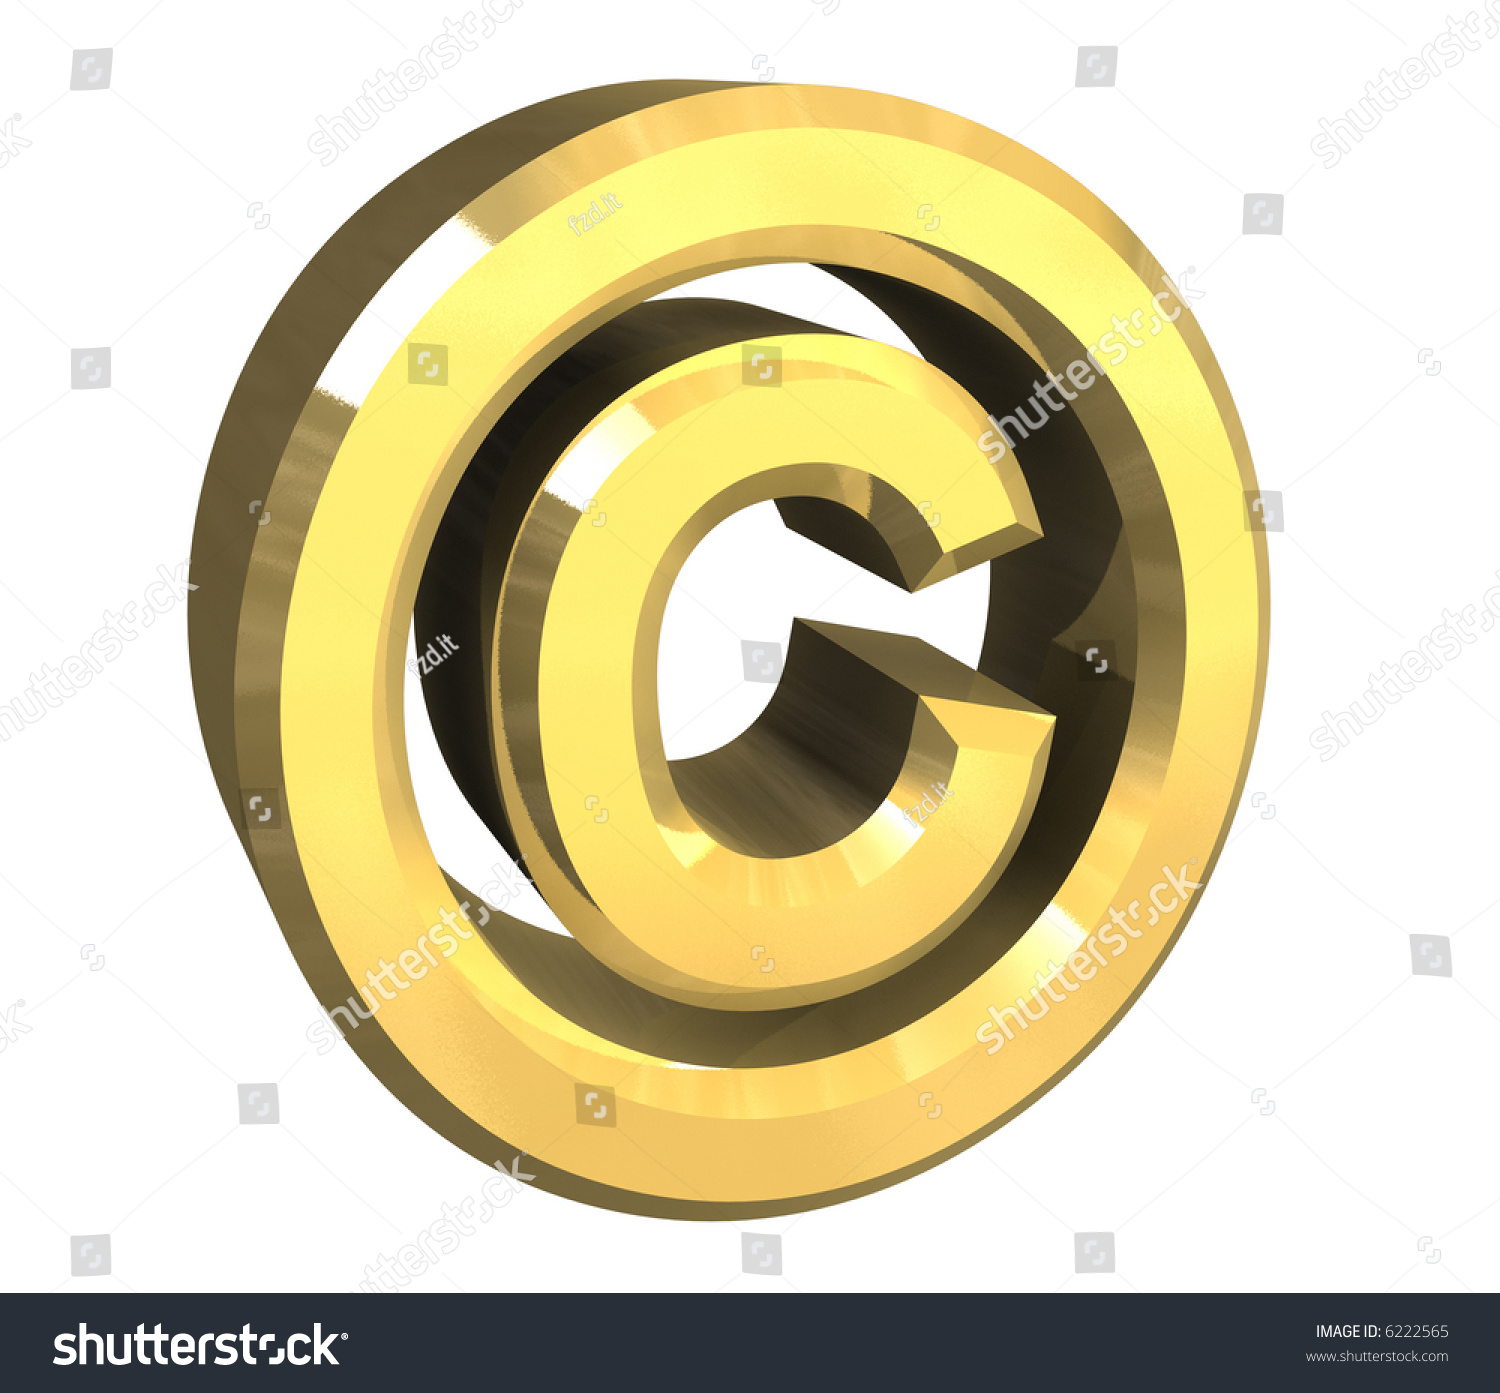 222,678 gold symbol stock images are available royalty-free.